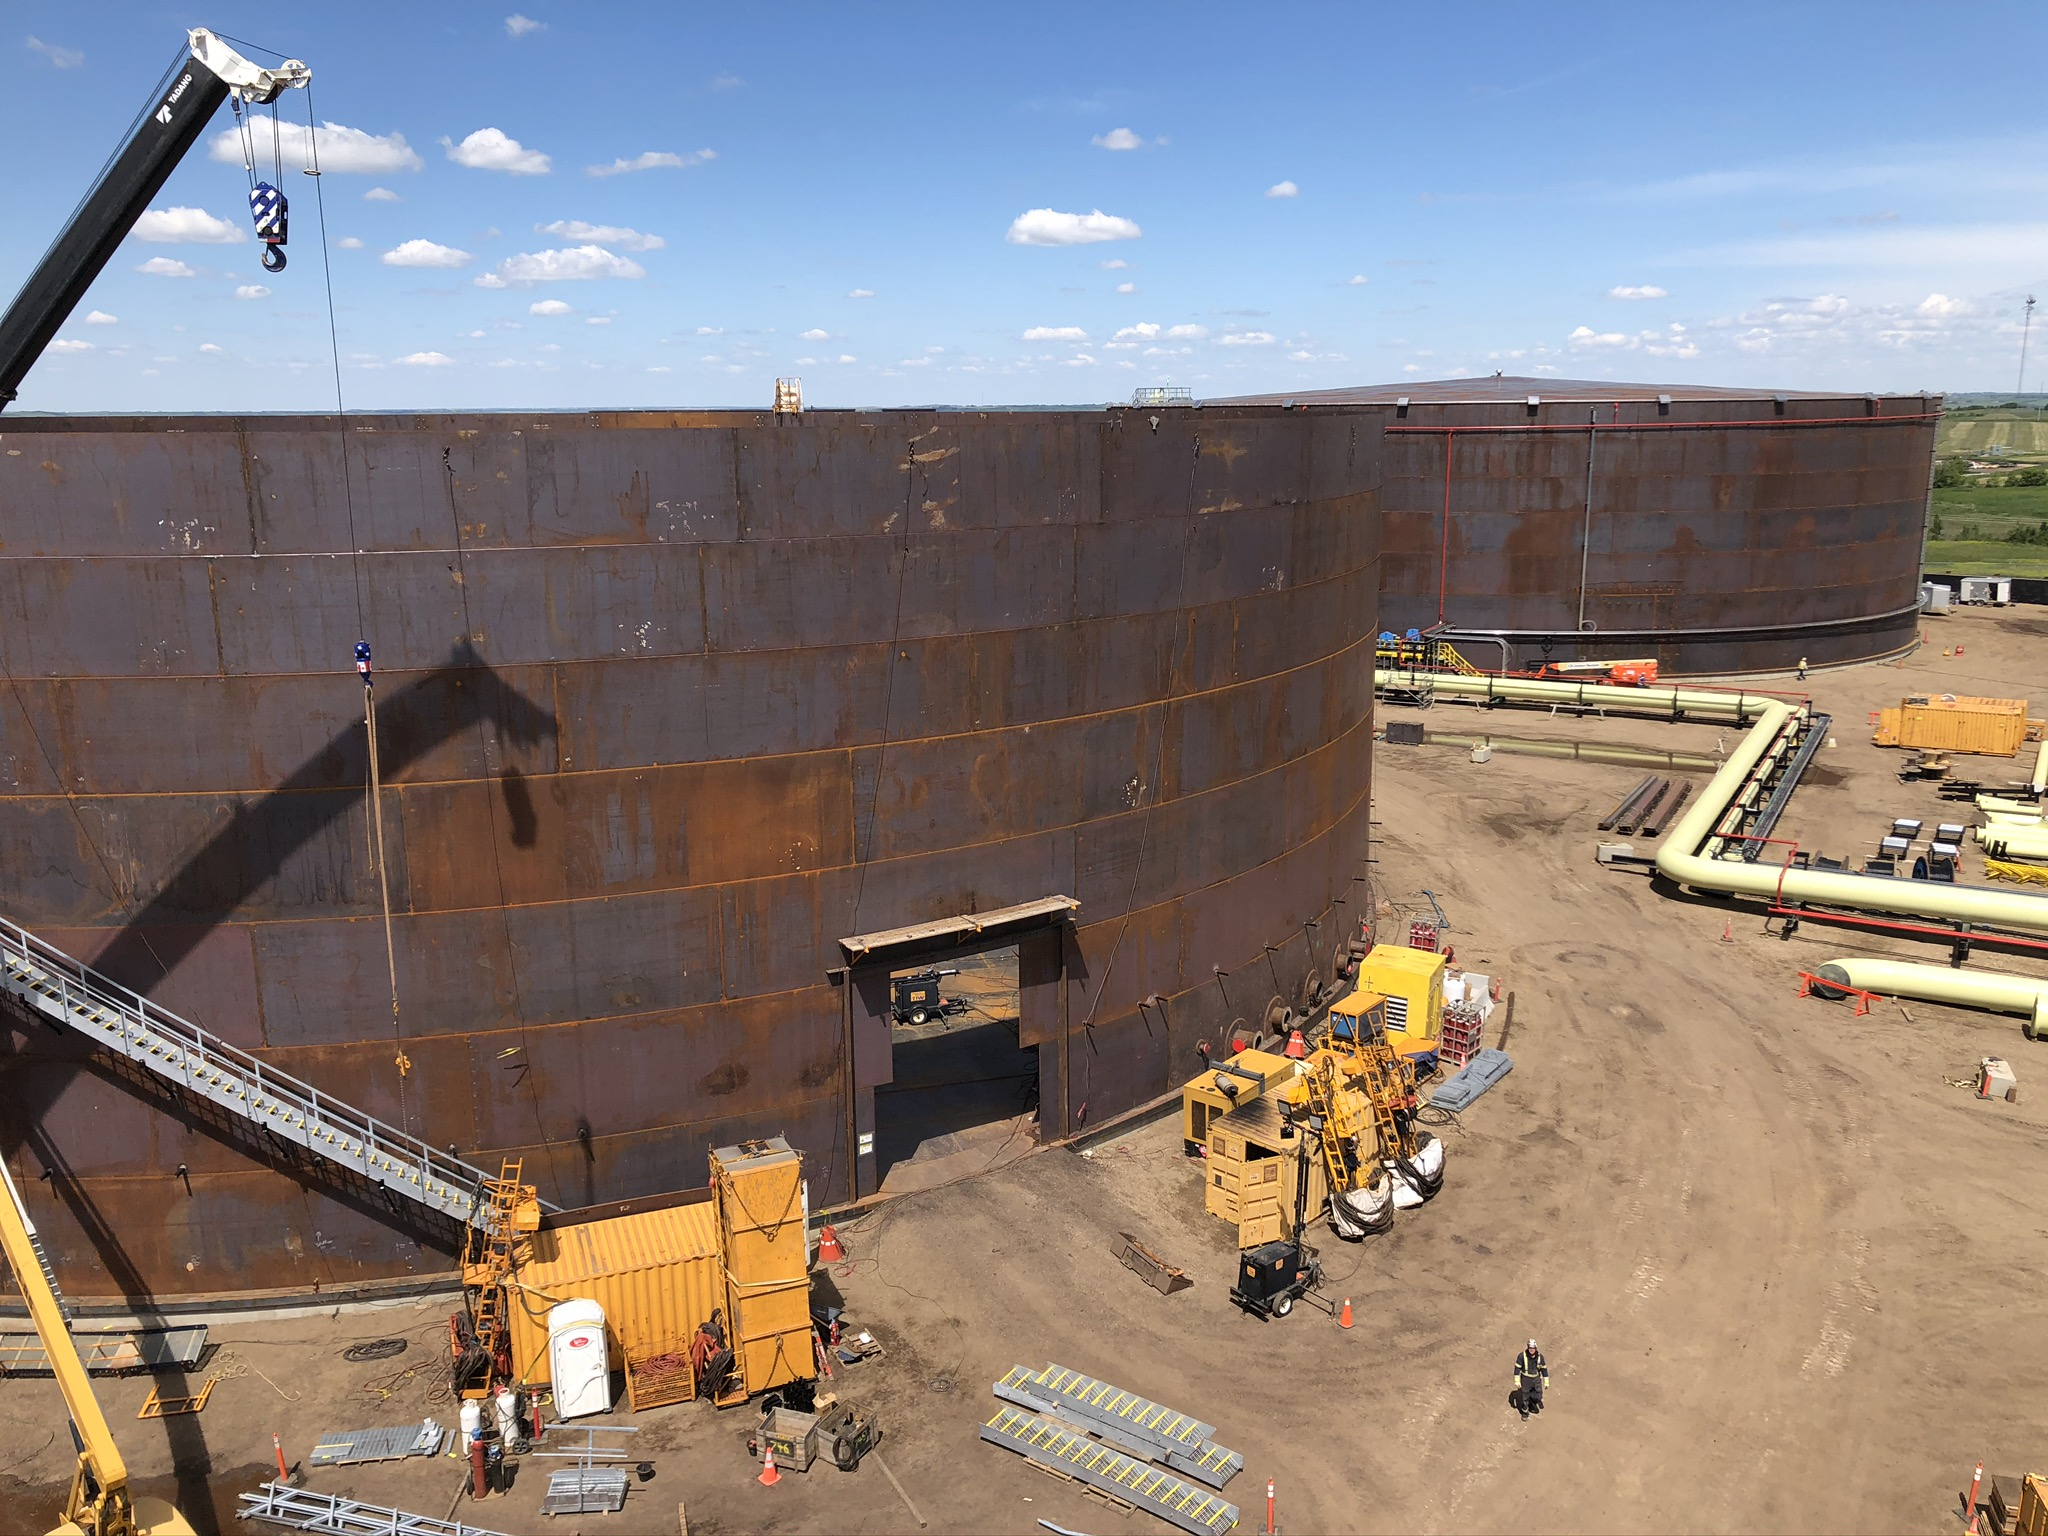 TIW and Local 146 Boilermakers built two 245-foot diameter tanks in 6 months.